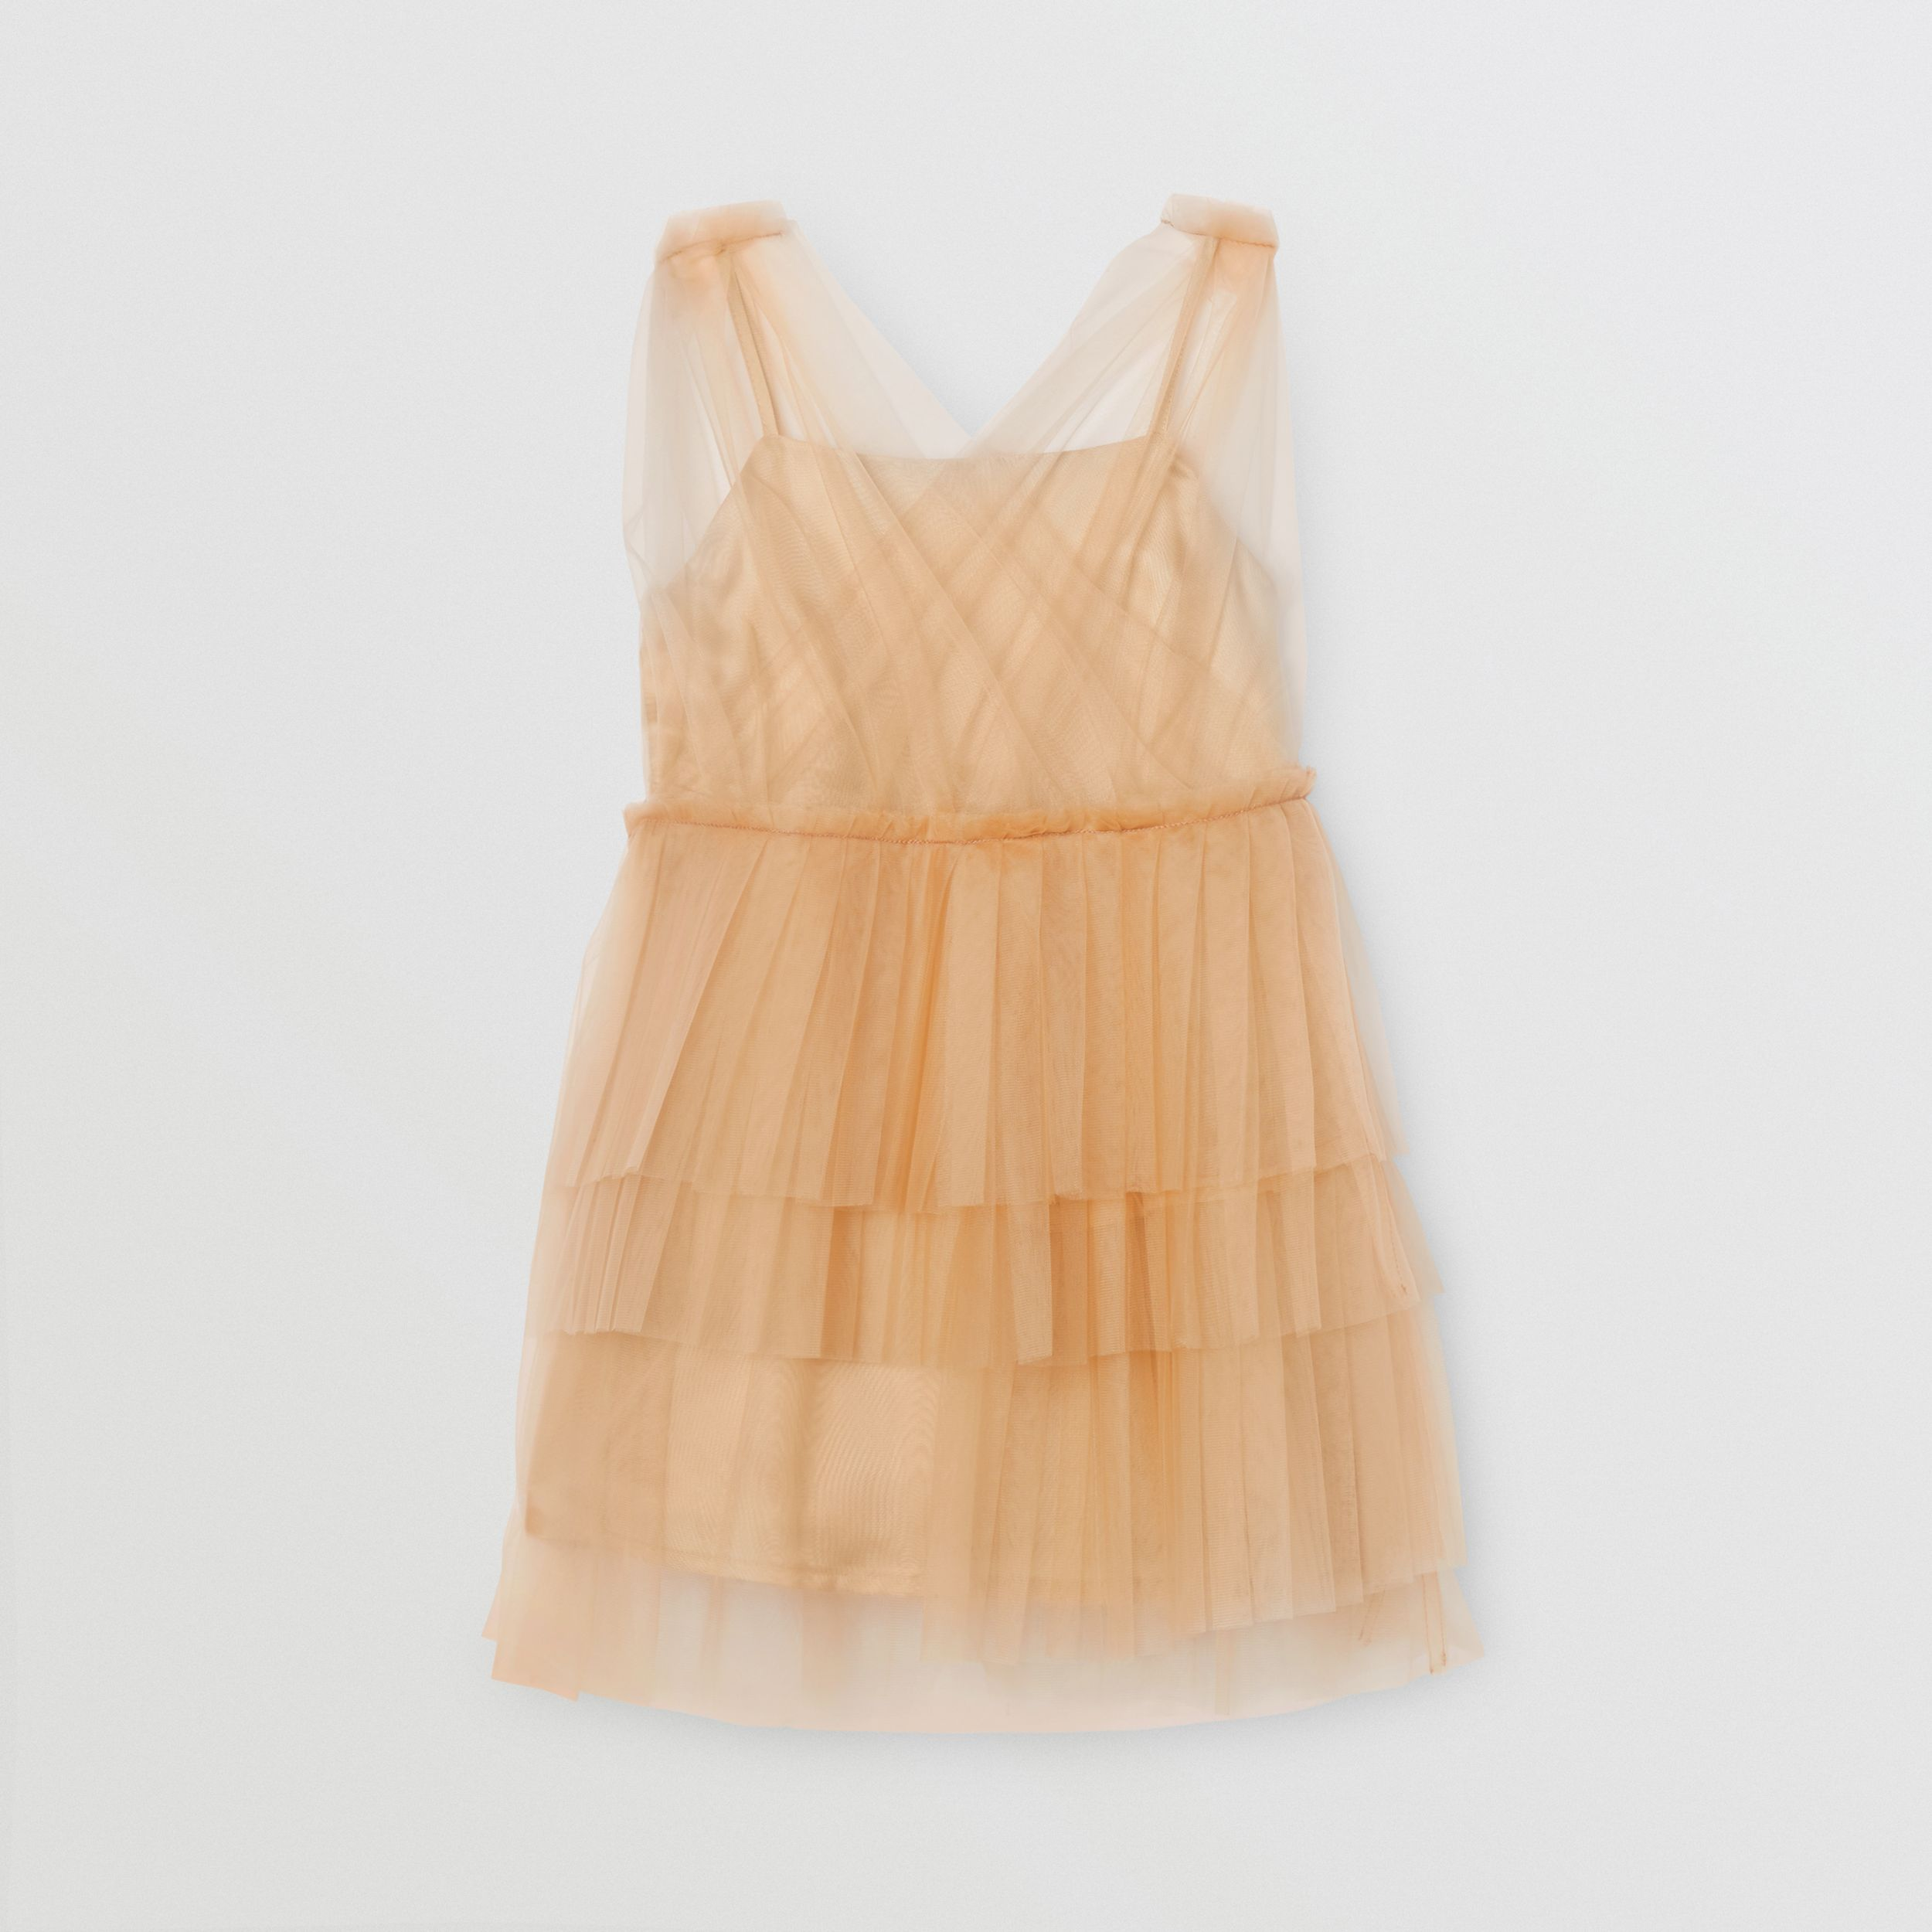 Tulle Tiered Dress in Oyster Beige - Children | Burberry - 1